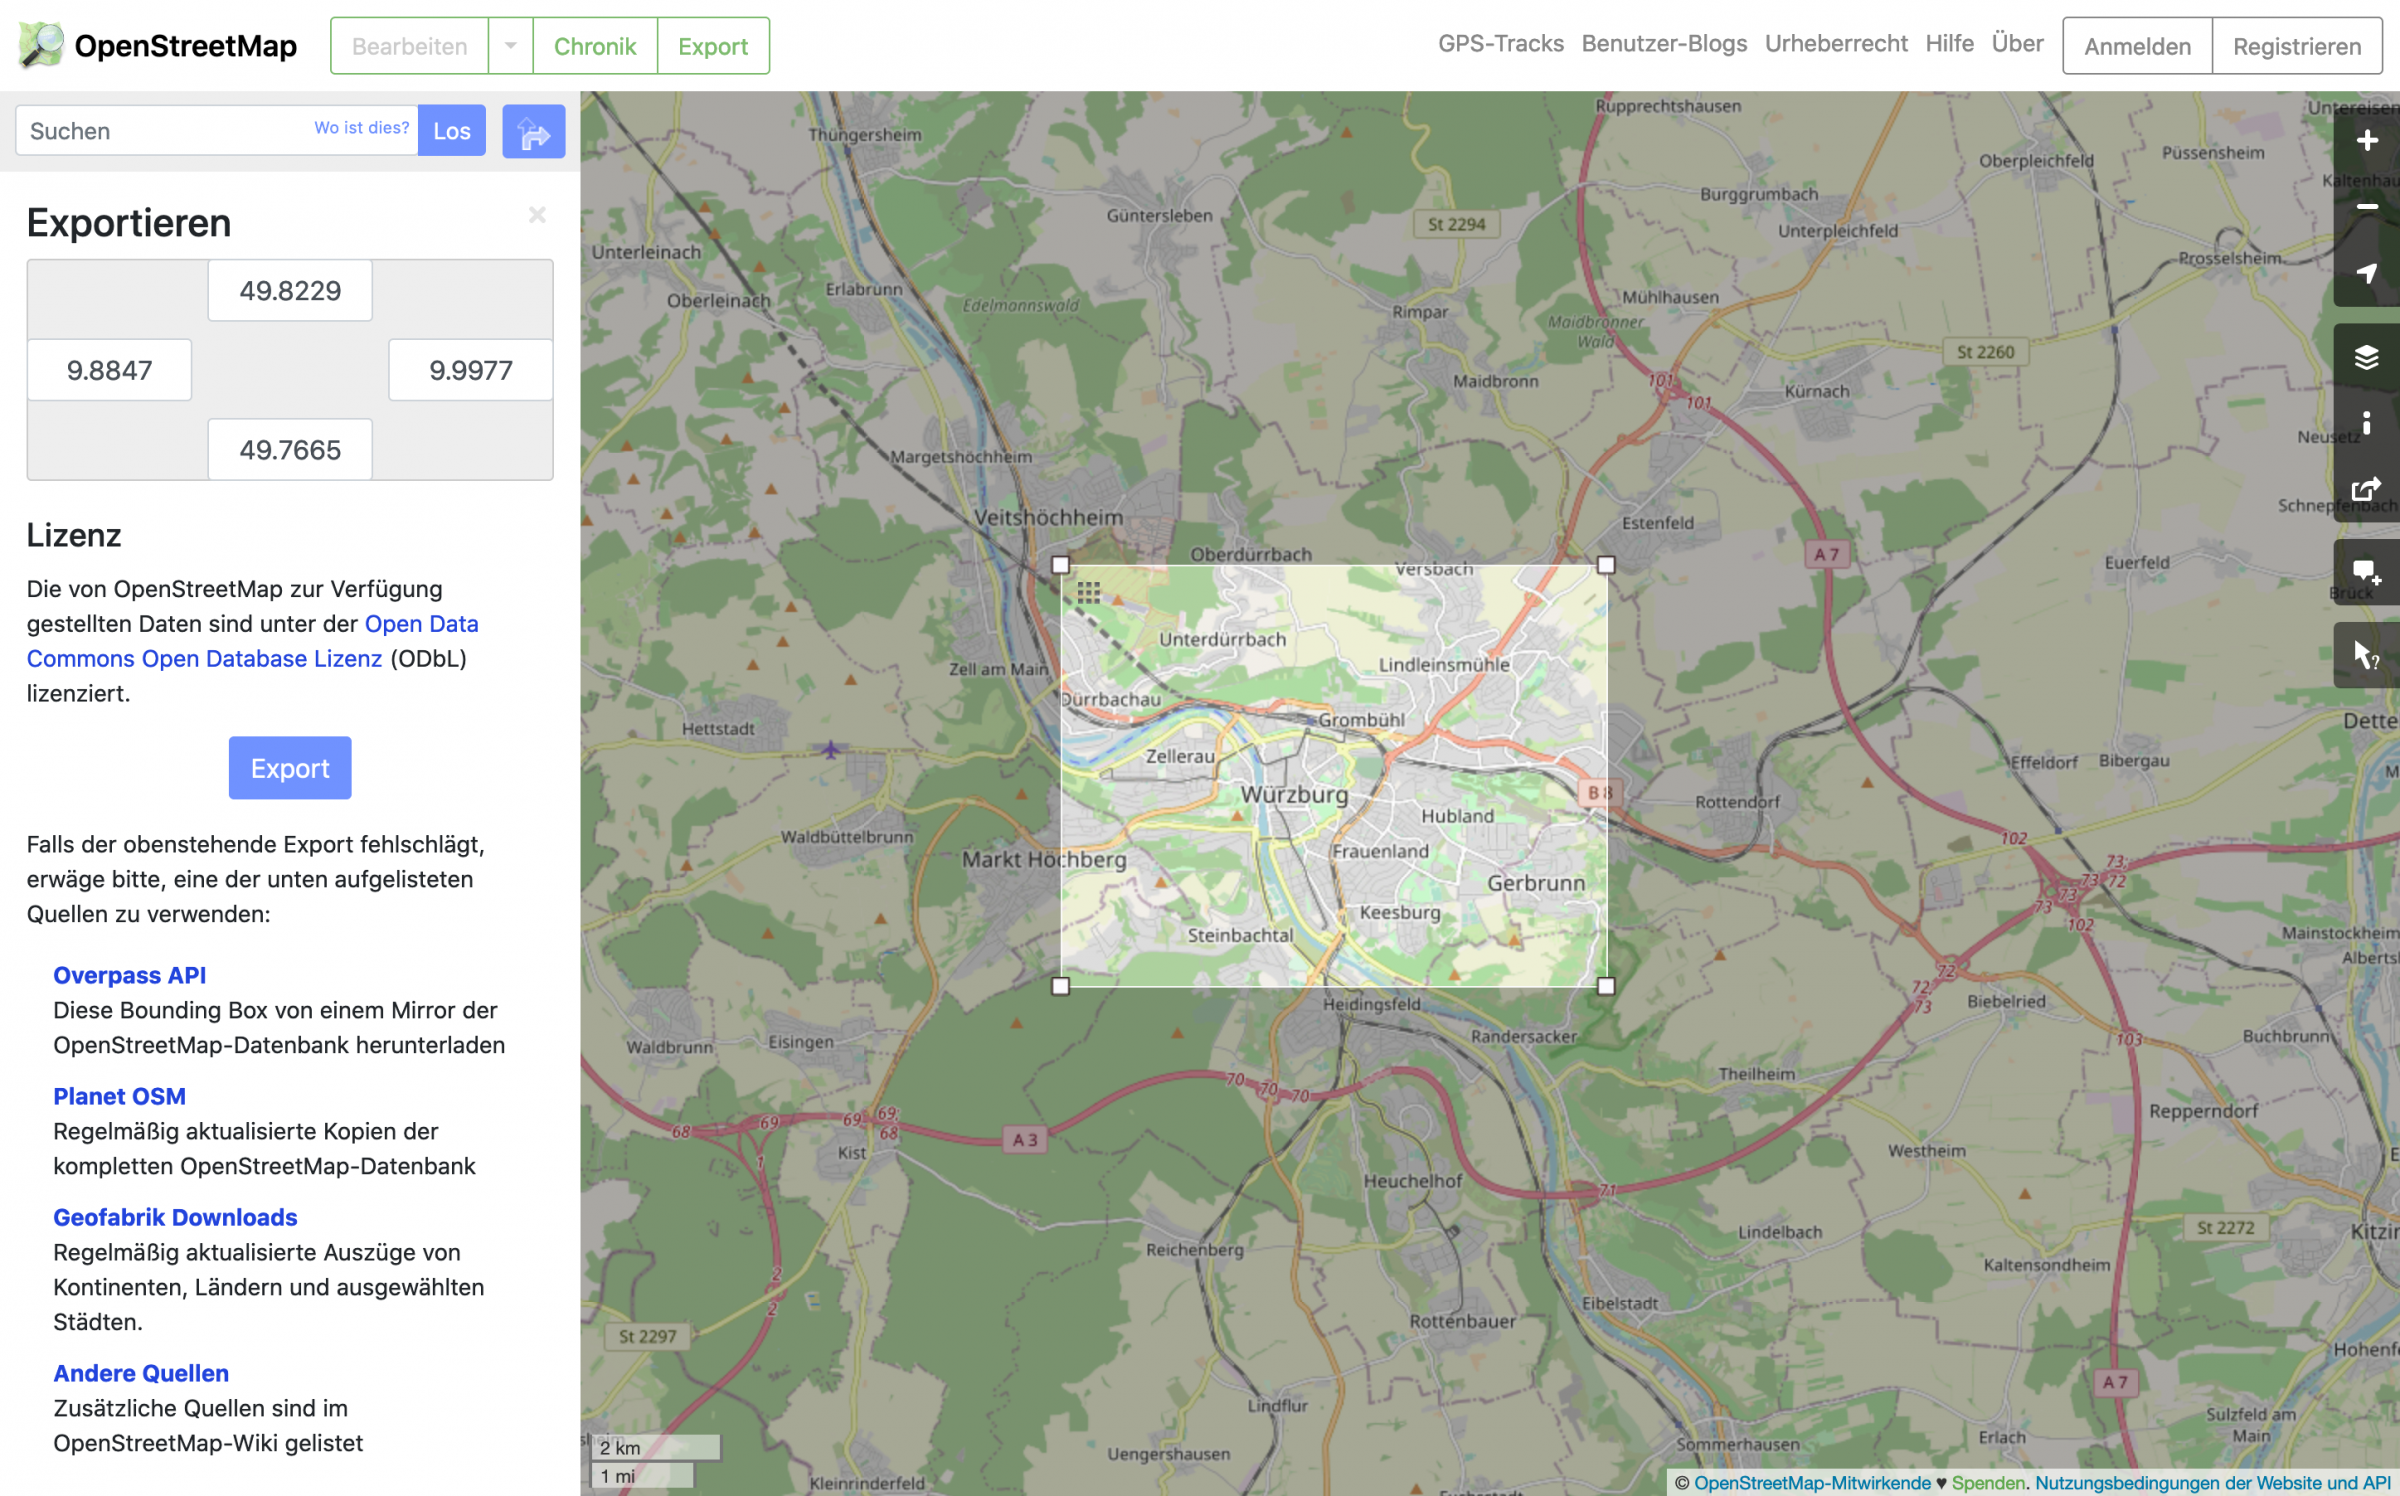 Data export from the OpenStreetMap webseite